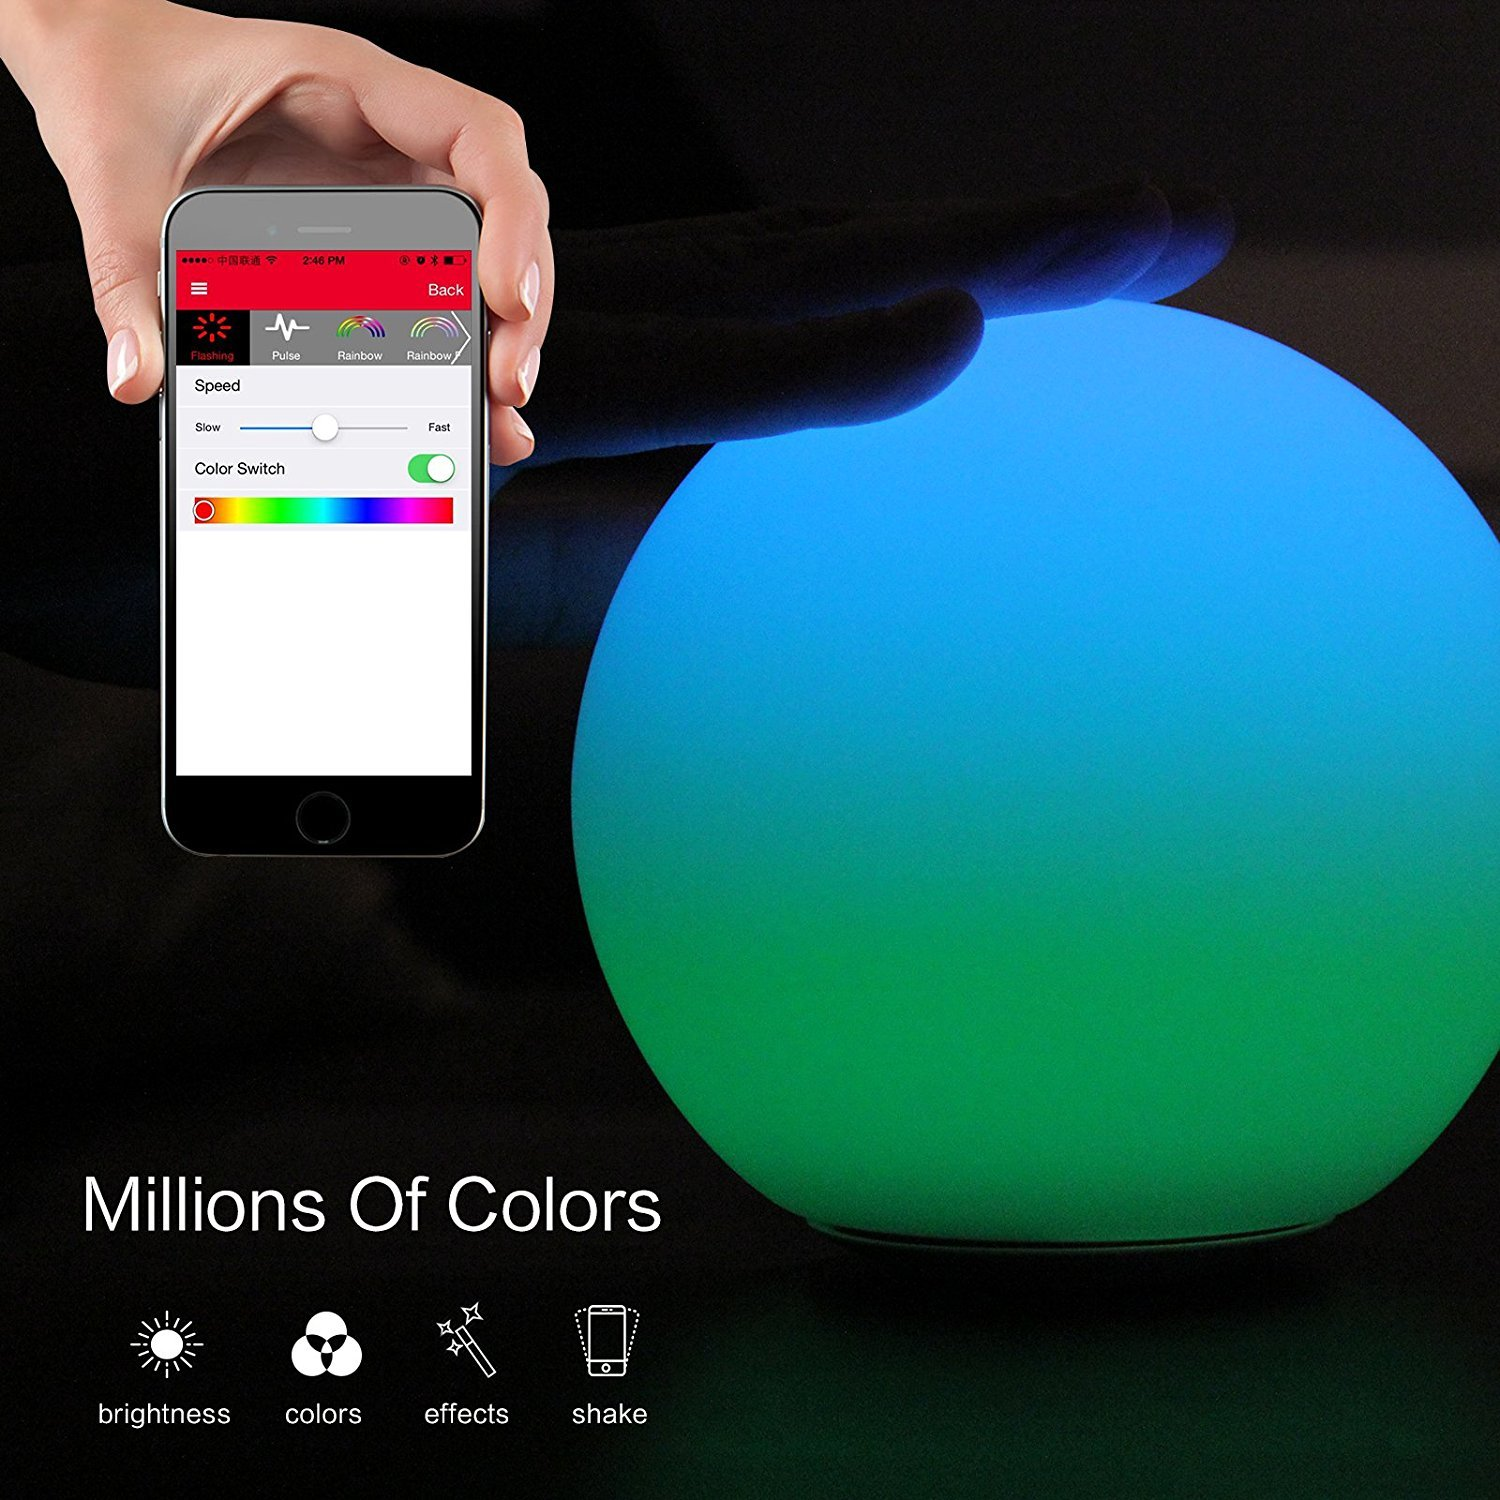 MIPOW PLAYBULB Sphere Bluetooth Smart Color Changing Night Light, Waterproof Touch Sensitive Dimmable LED Glass Orb Bulb with APP control, Wireless Charging Solution, Ideal for Home Bedroom Patio by MIPOW (Image #2)